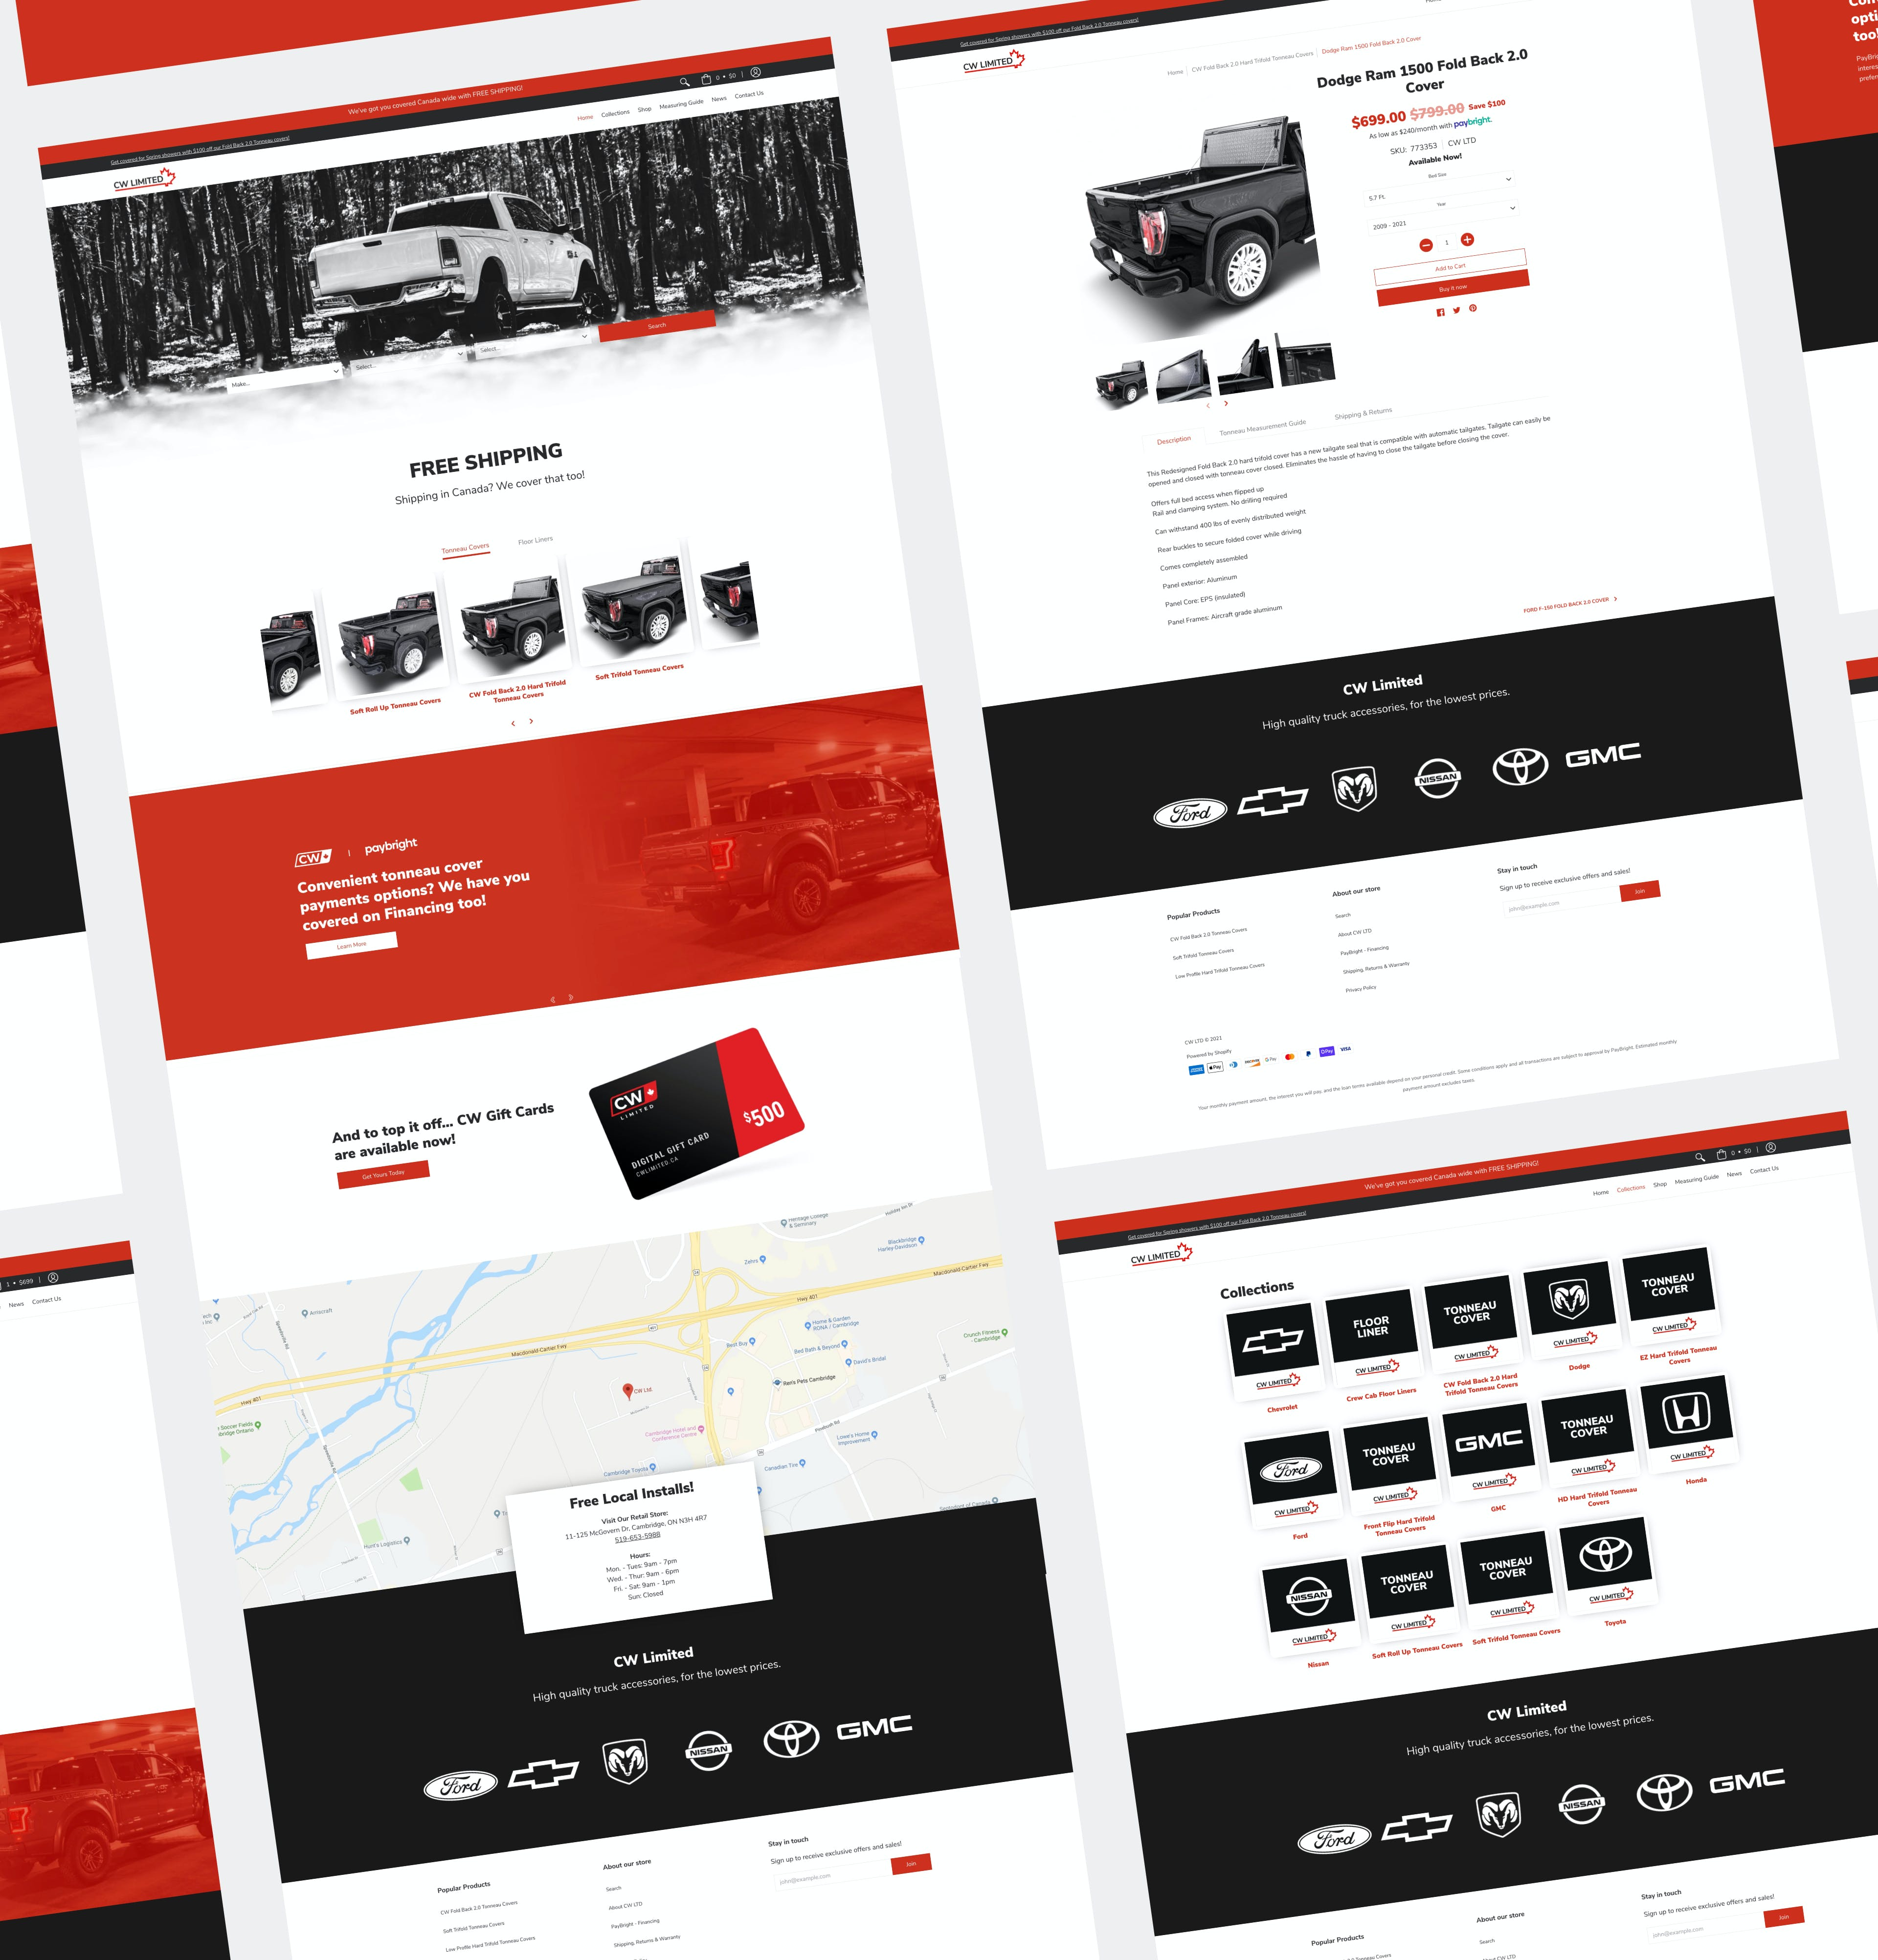 CW Website Grid Showing Home Page, Product Page, Collection Page